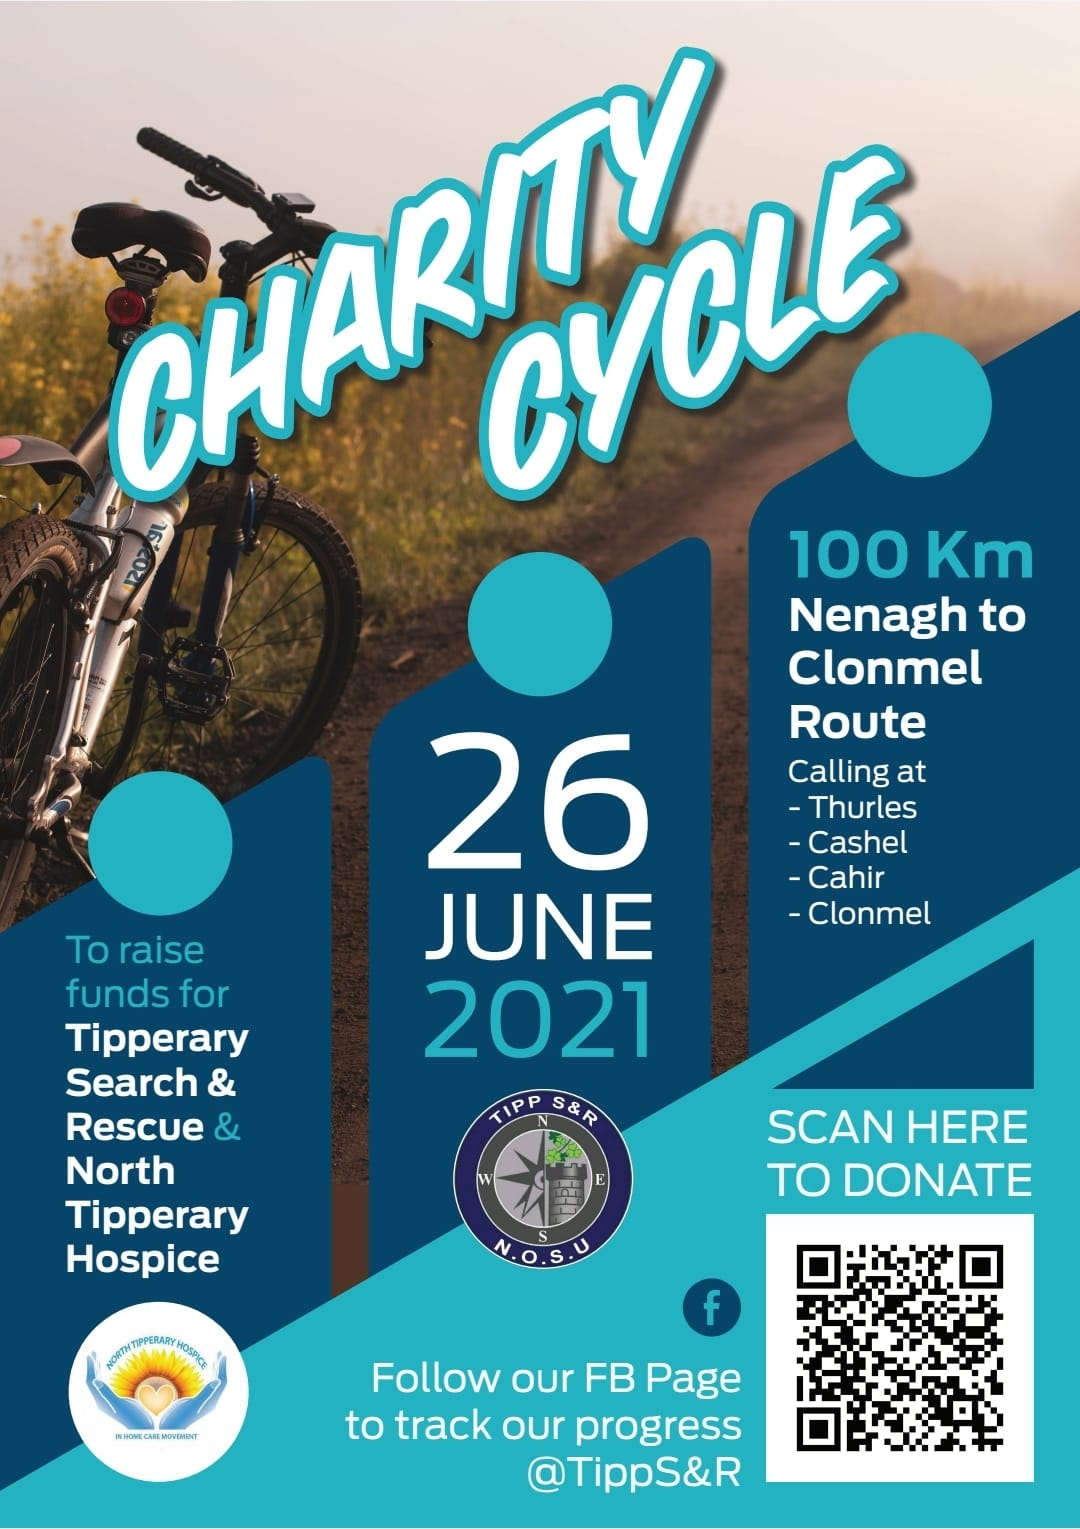 100k cycle 26th June in aid of Tipperary Search and Rescue and North Tipperary Hospice